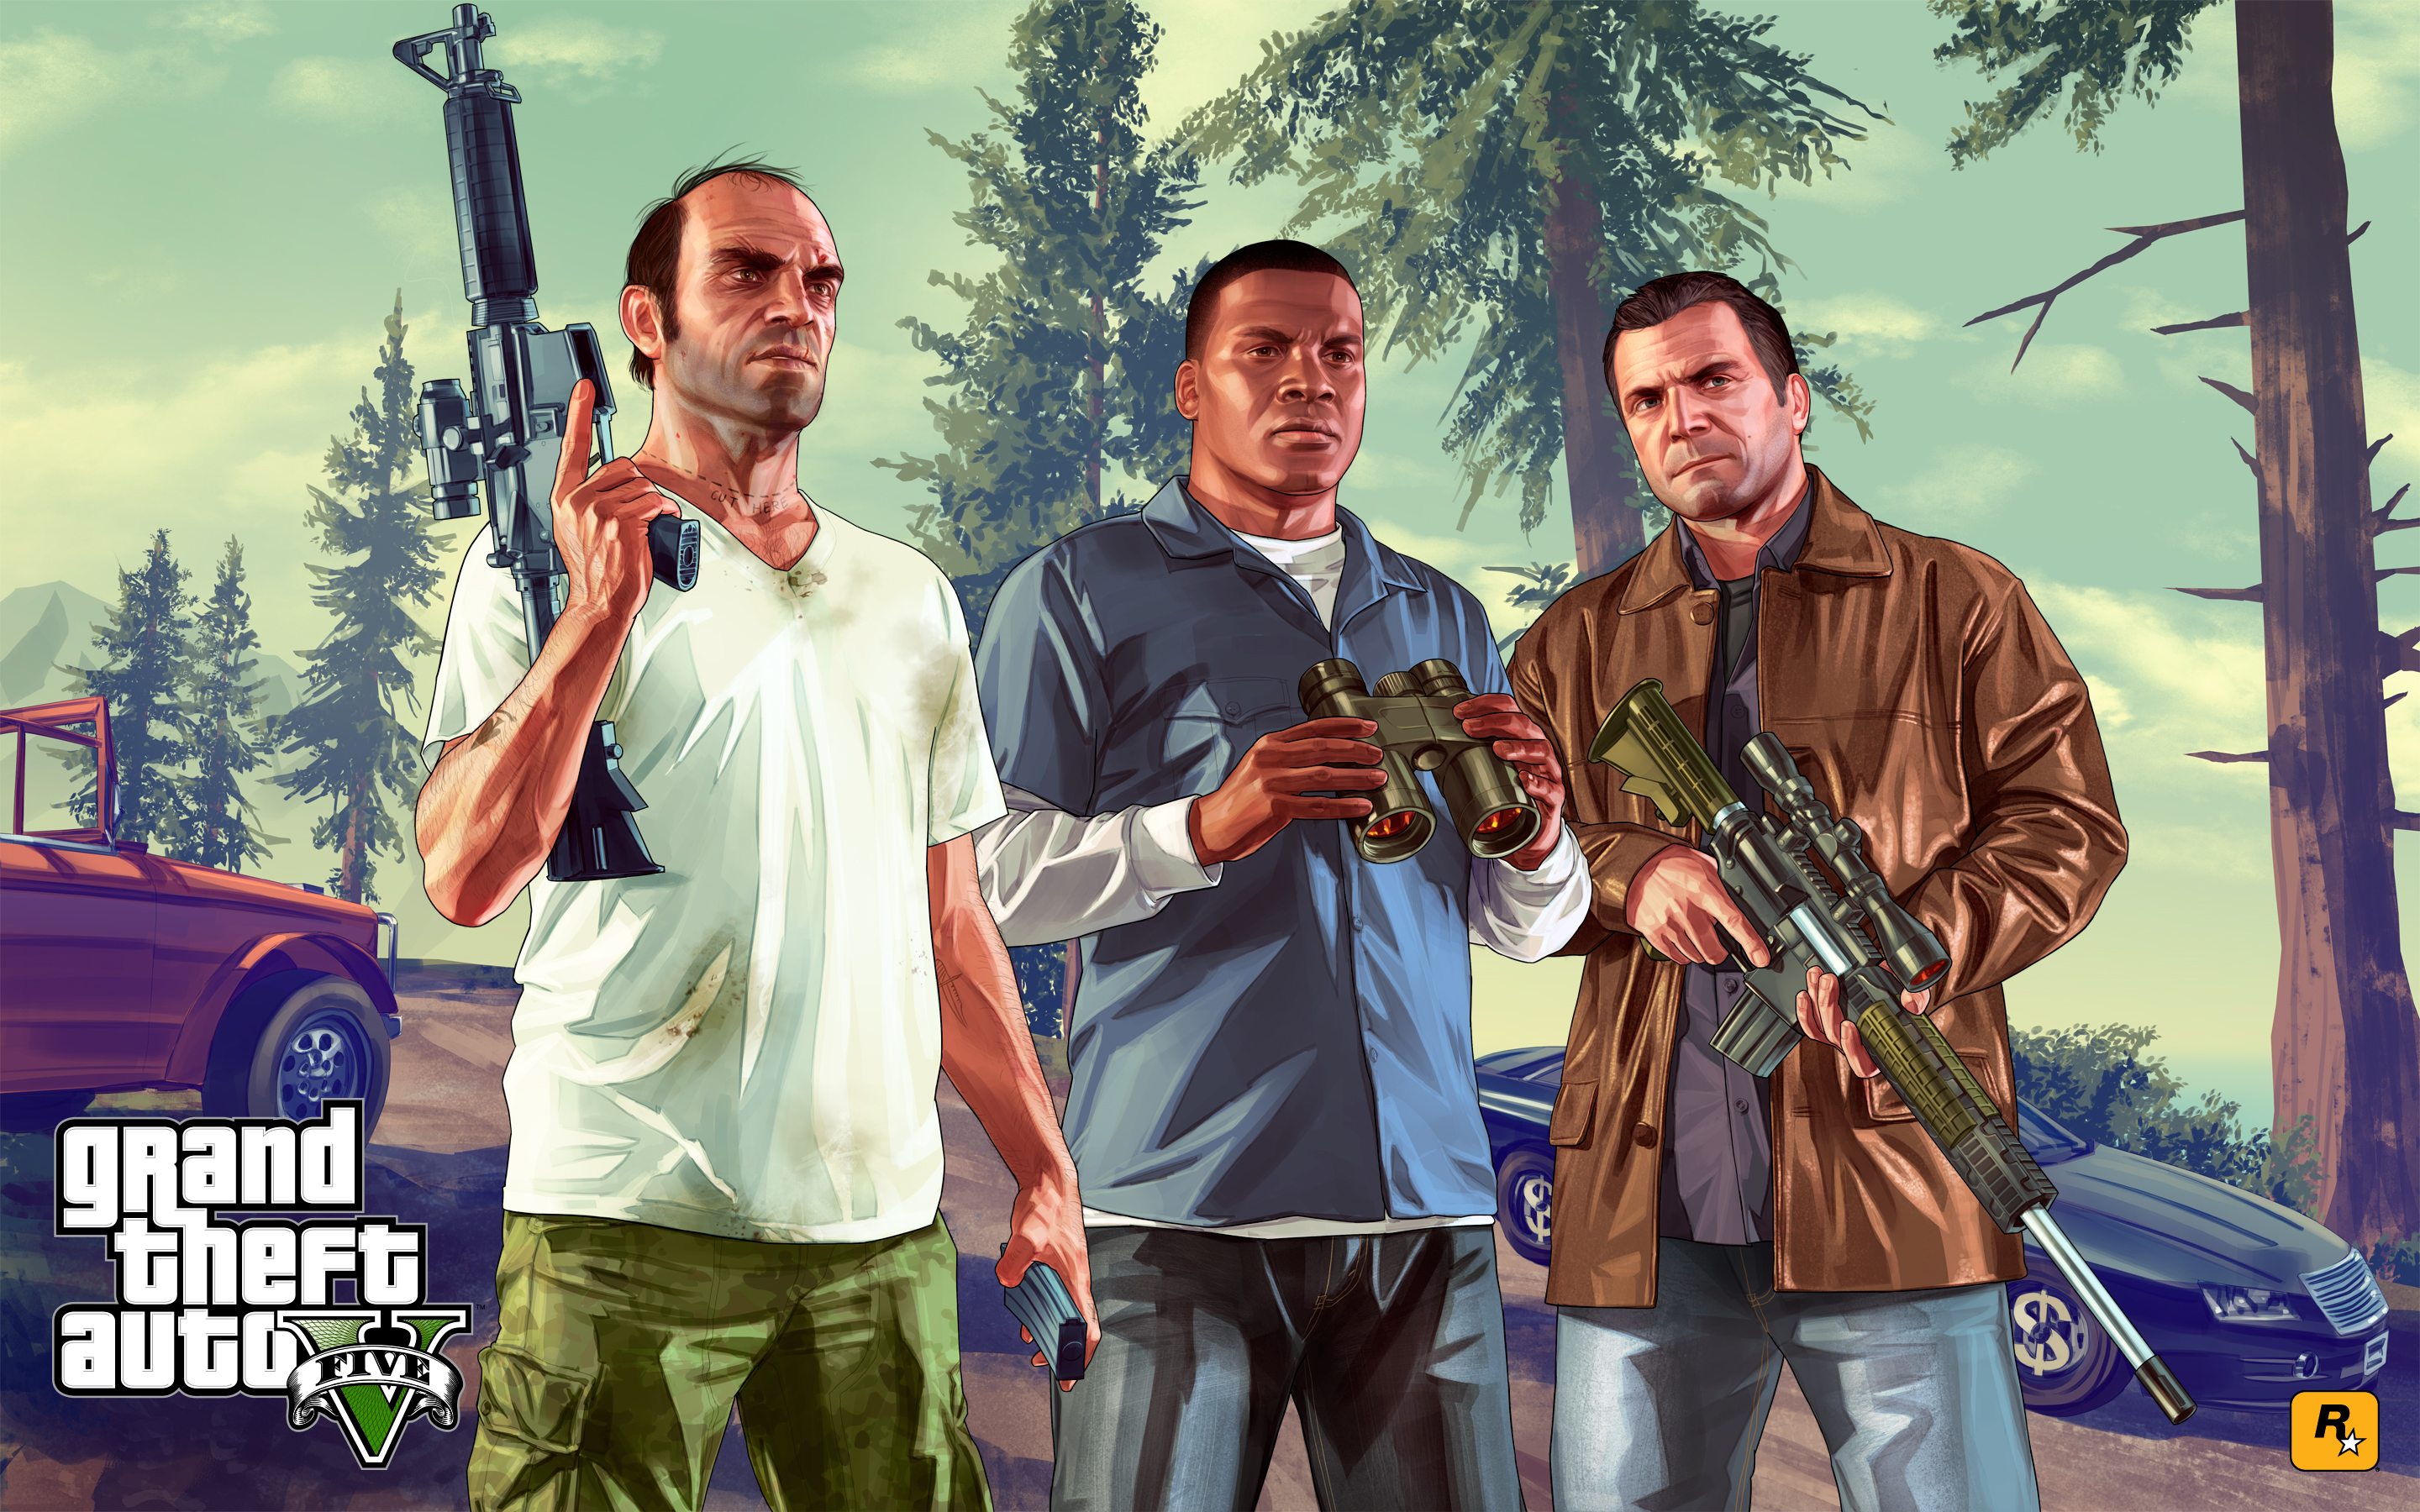 http://www.100hdwallpapers.com/wallpapers/2880x1800/gr_theft_auto_gta_5-widescreen_wallpapers.jpg